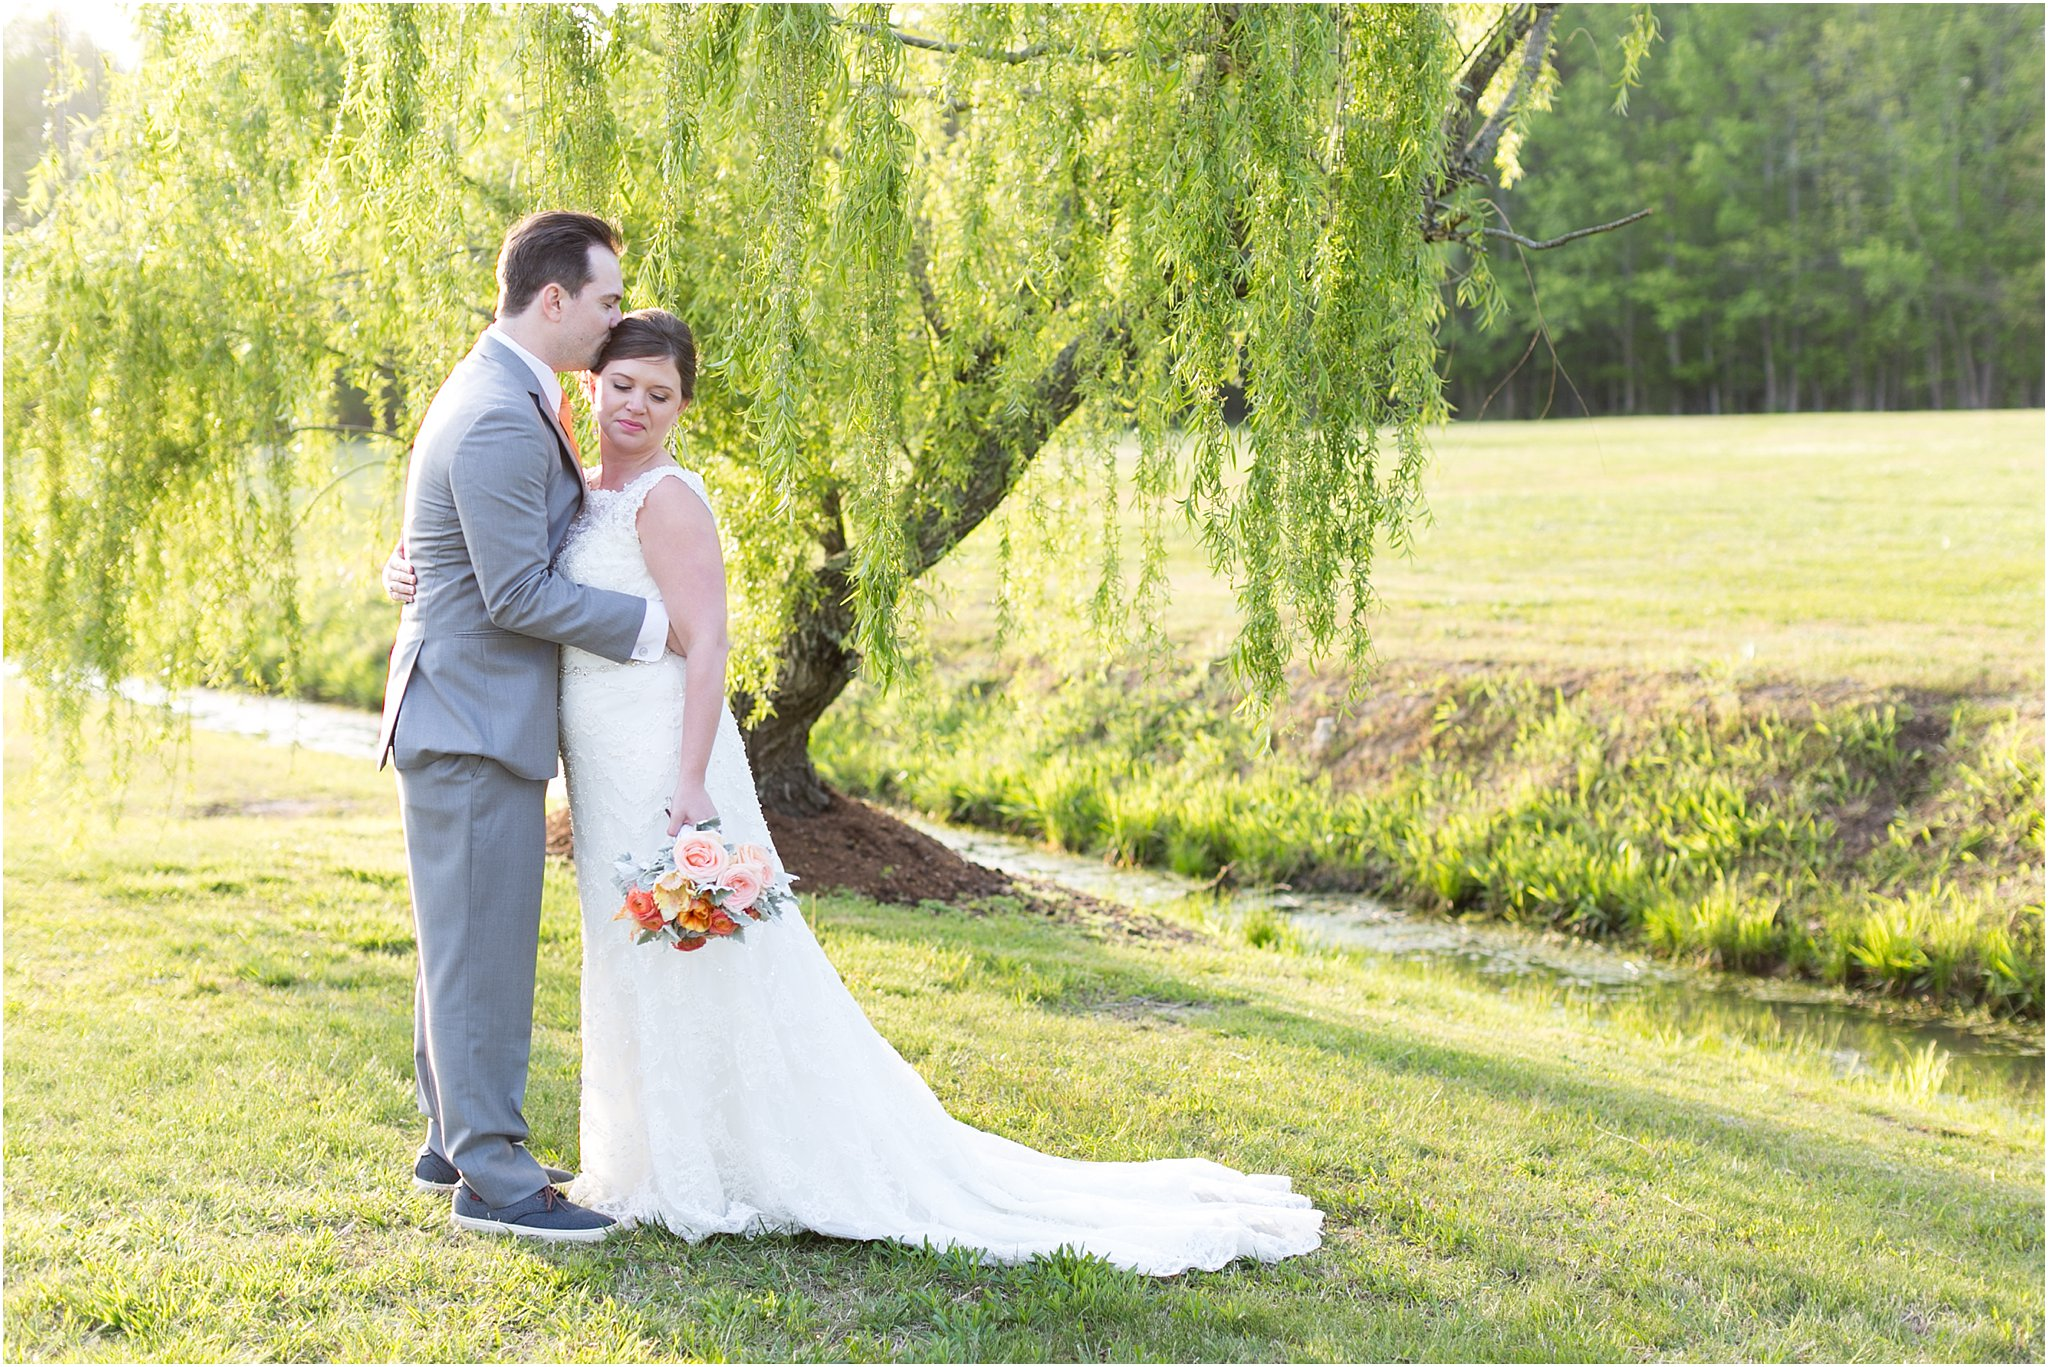 jessica_ryan_photography_holly_ridge_manor_wedding_roost_flowers_jamie_leigh_events_dhalia_edwards_candid_vibrant_wedding_colors_1329